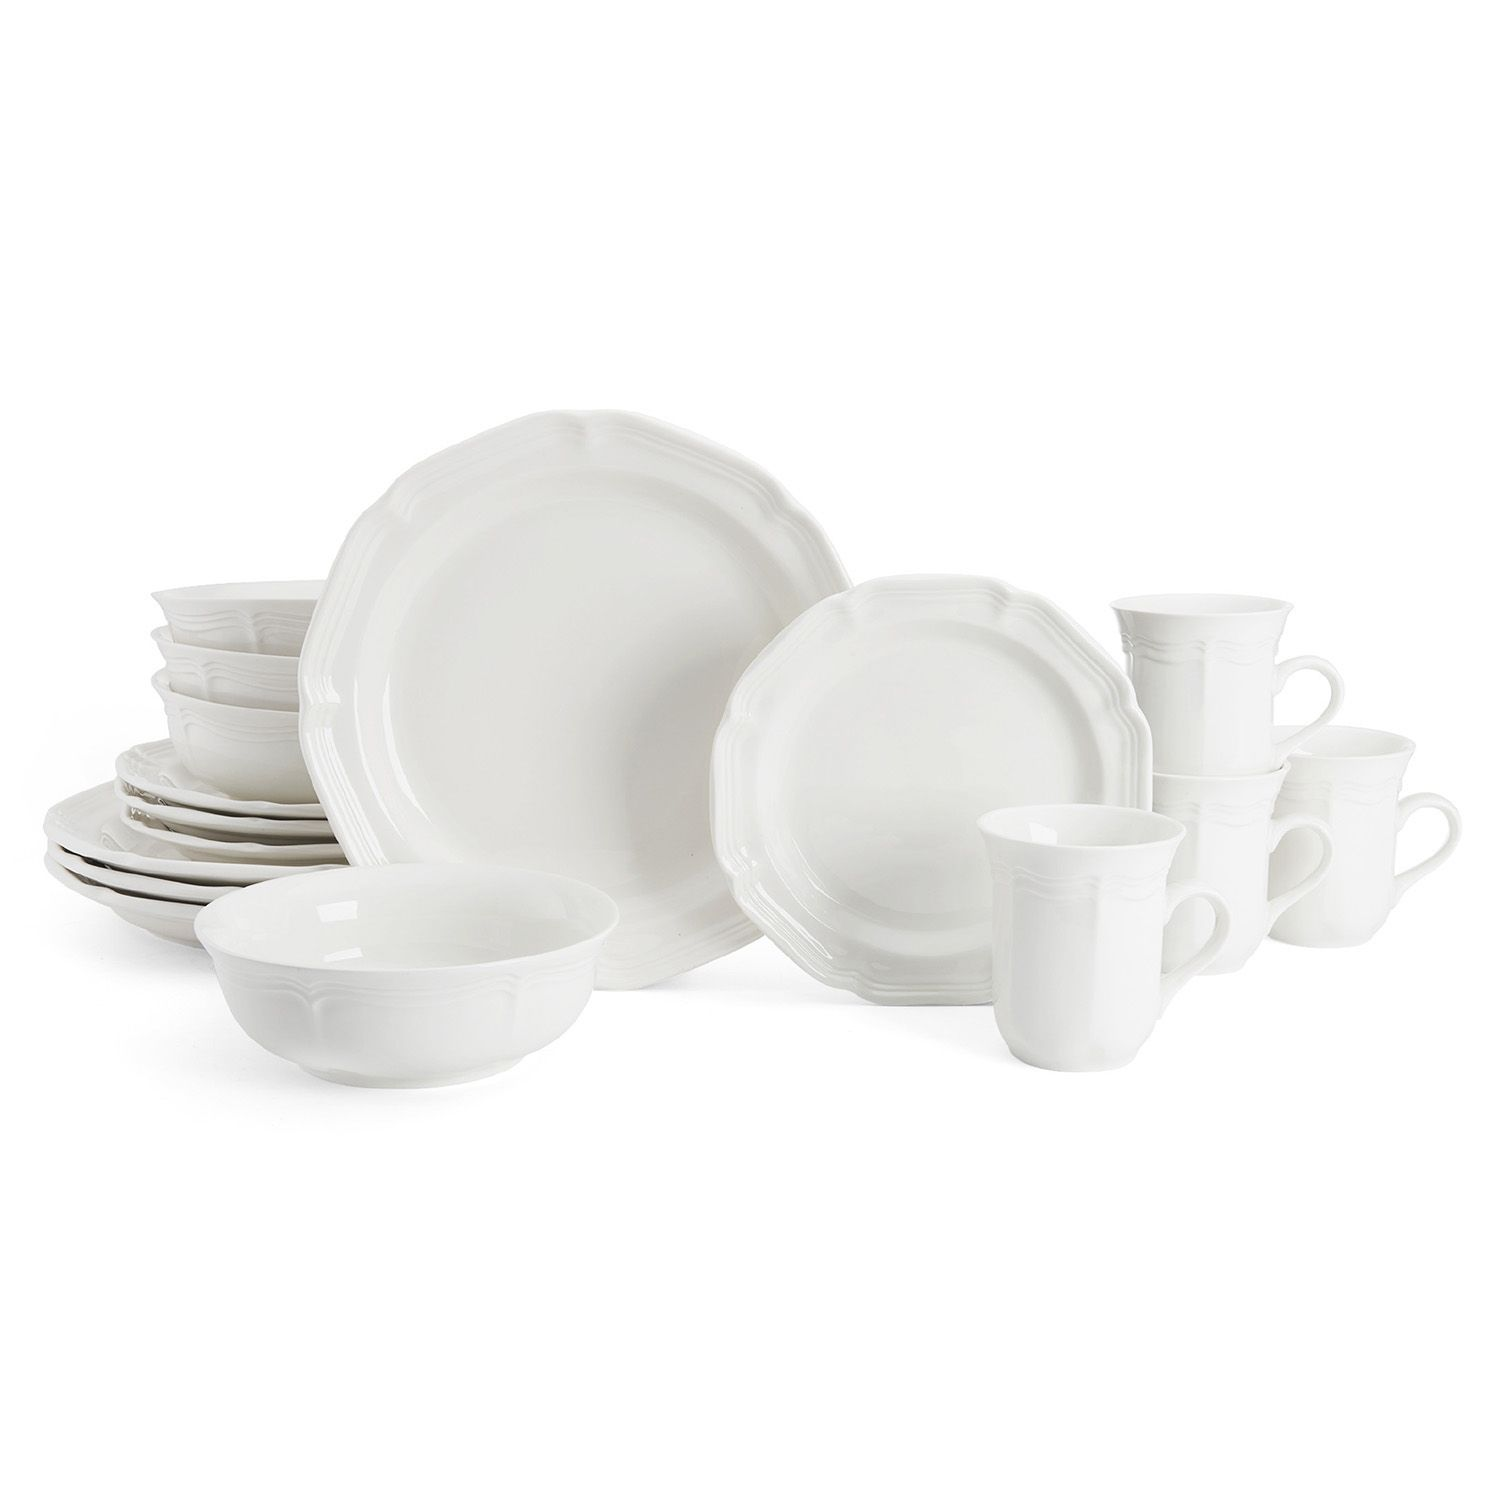 sc 1 st  Kohl\u0027s & Mikasa French Countryside 16-pc. Dinnerware Set